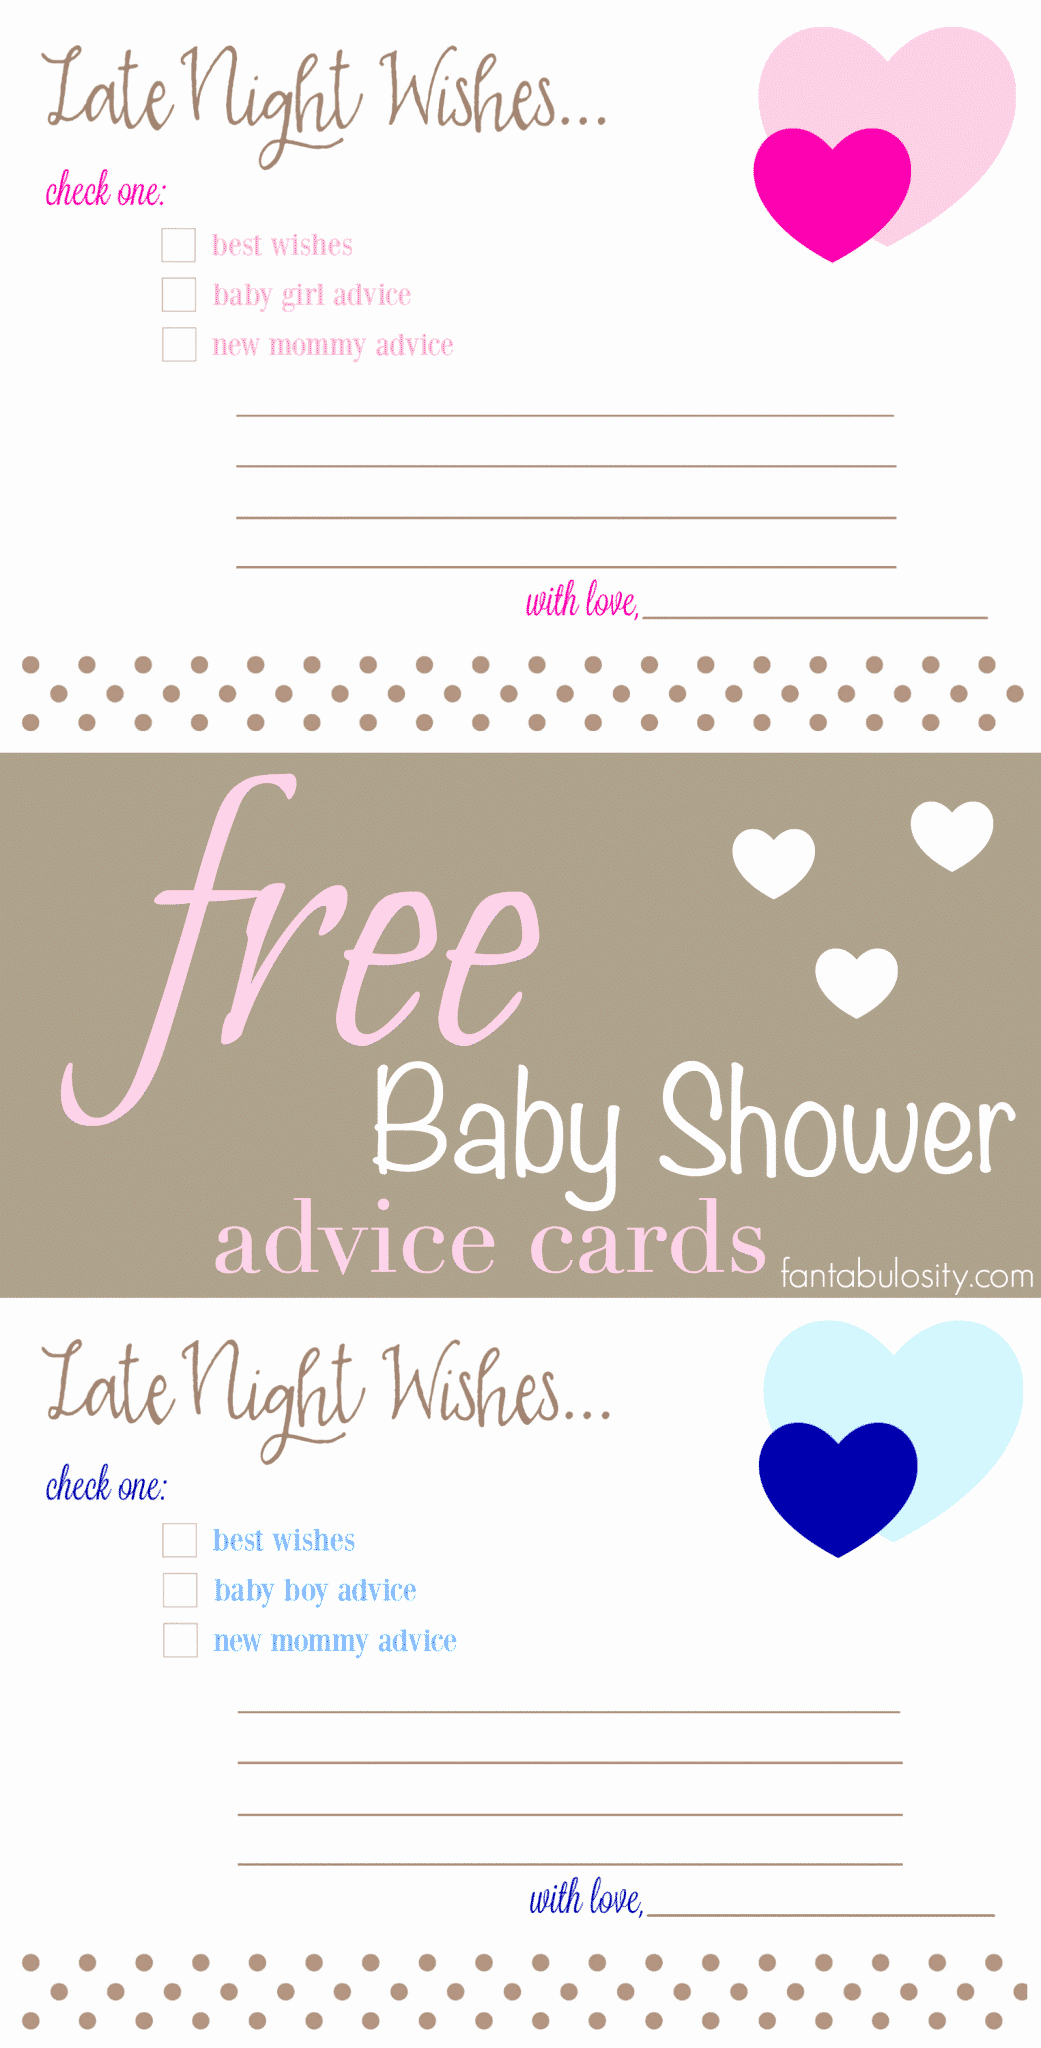 Baby Shower Card Printable Fresh Free Printable Baby Shower Advice & Best Wishes Cards